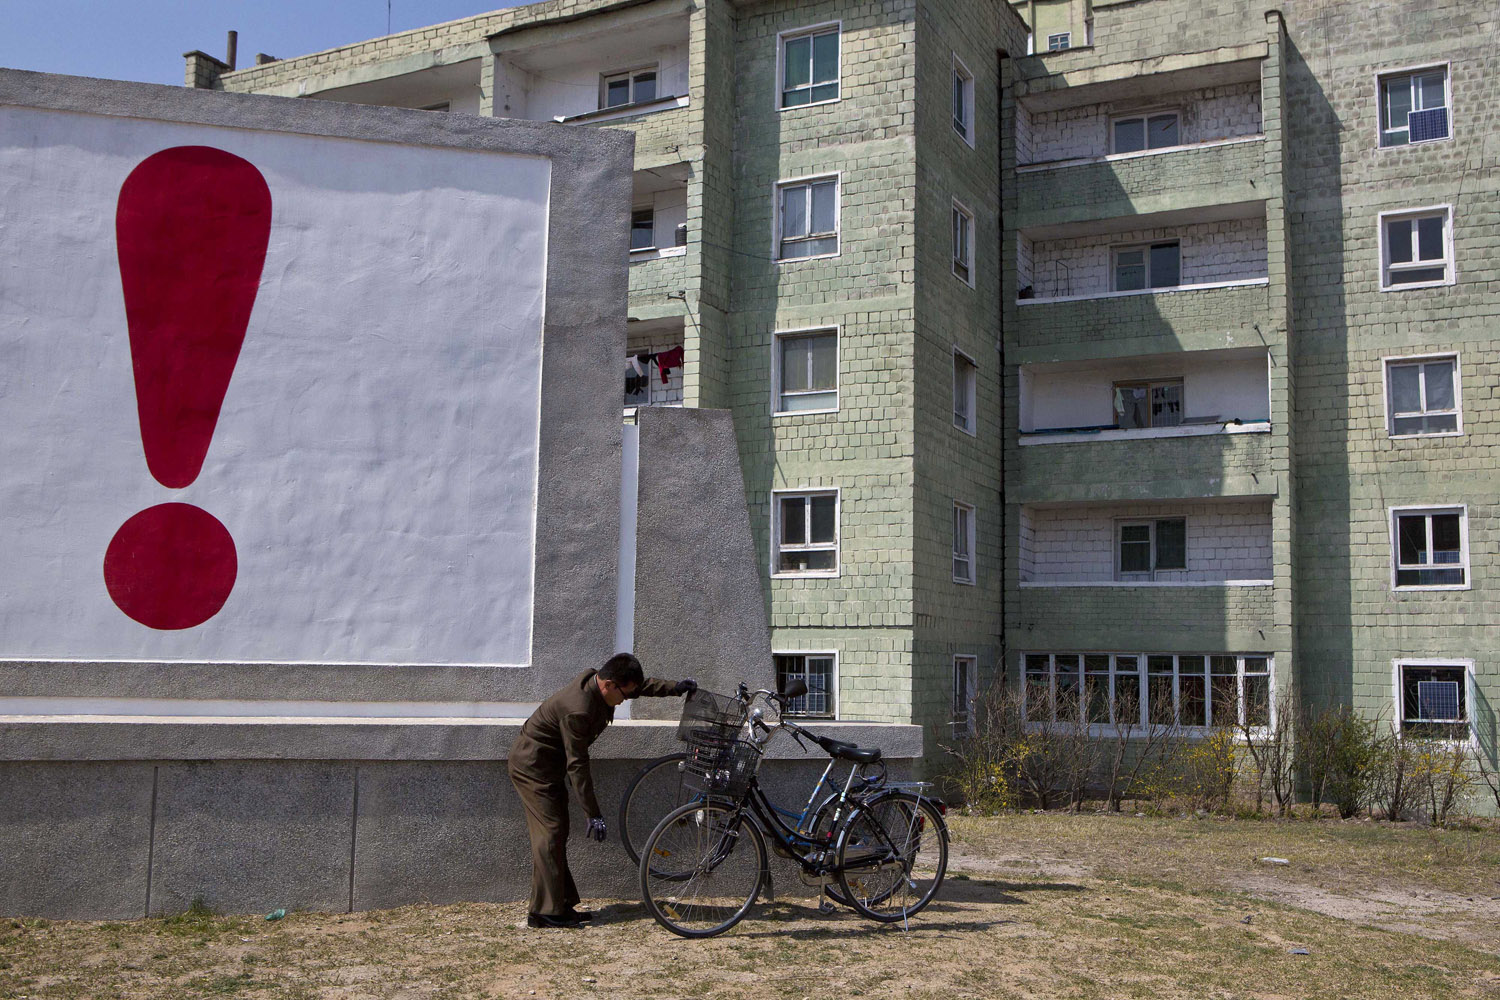 April 24, 2013. A North Korean man checks his bicycle next to a painted exclamation point on a propaganda billboard in Kaesong, North Korea, north of the demilitarized zone which separates the two Koreas.